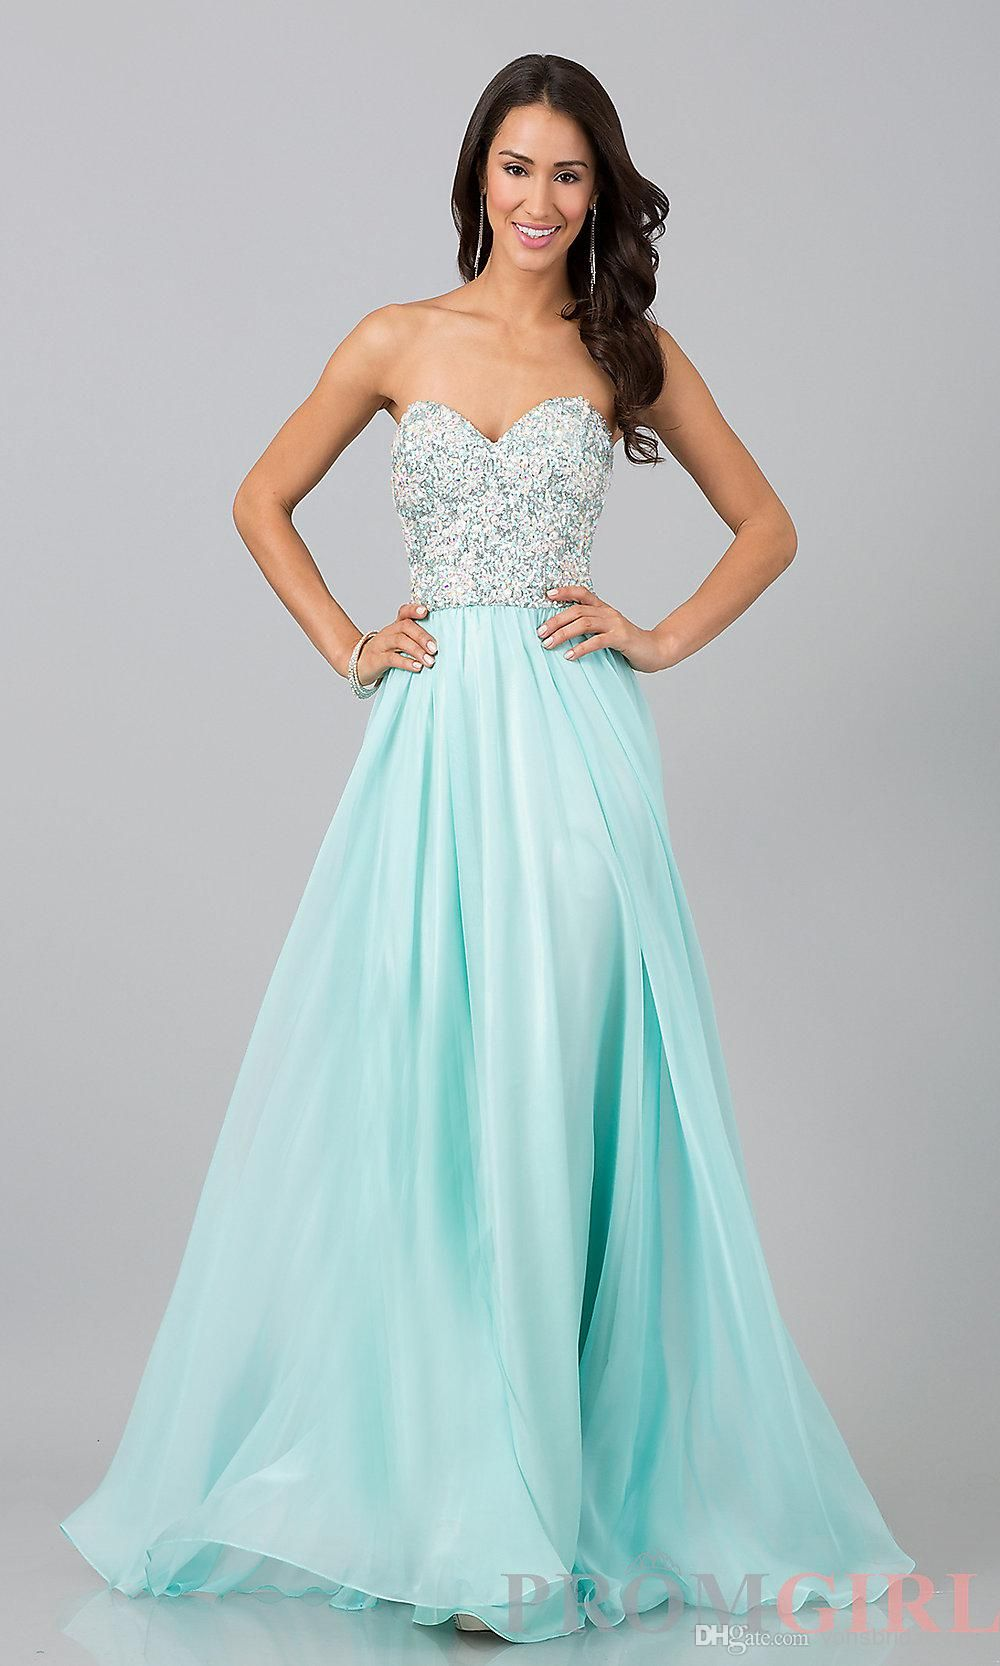 Wholesale prom dresses buy offsweetheart silver beaded sequin